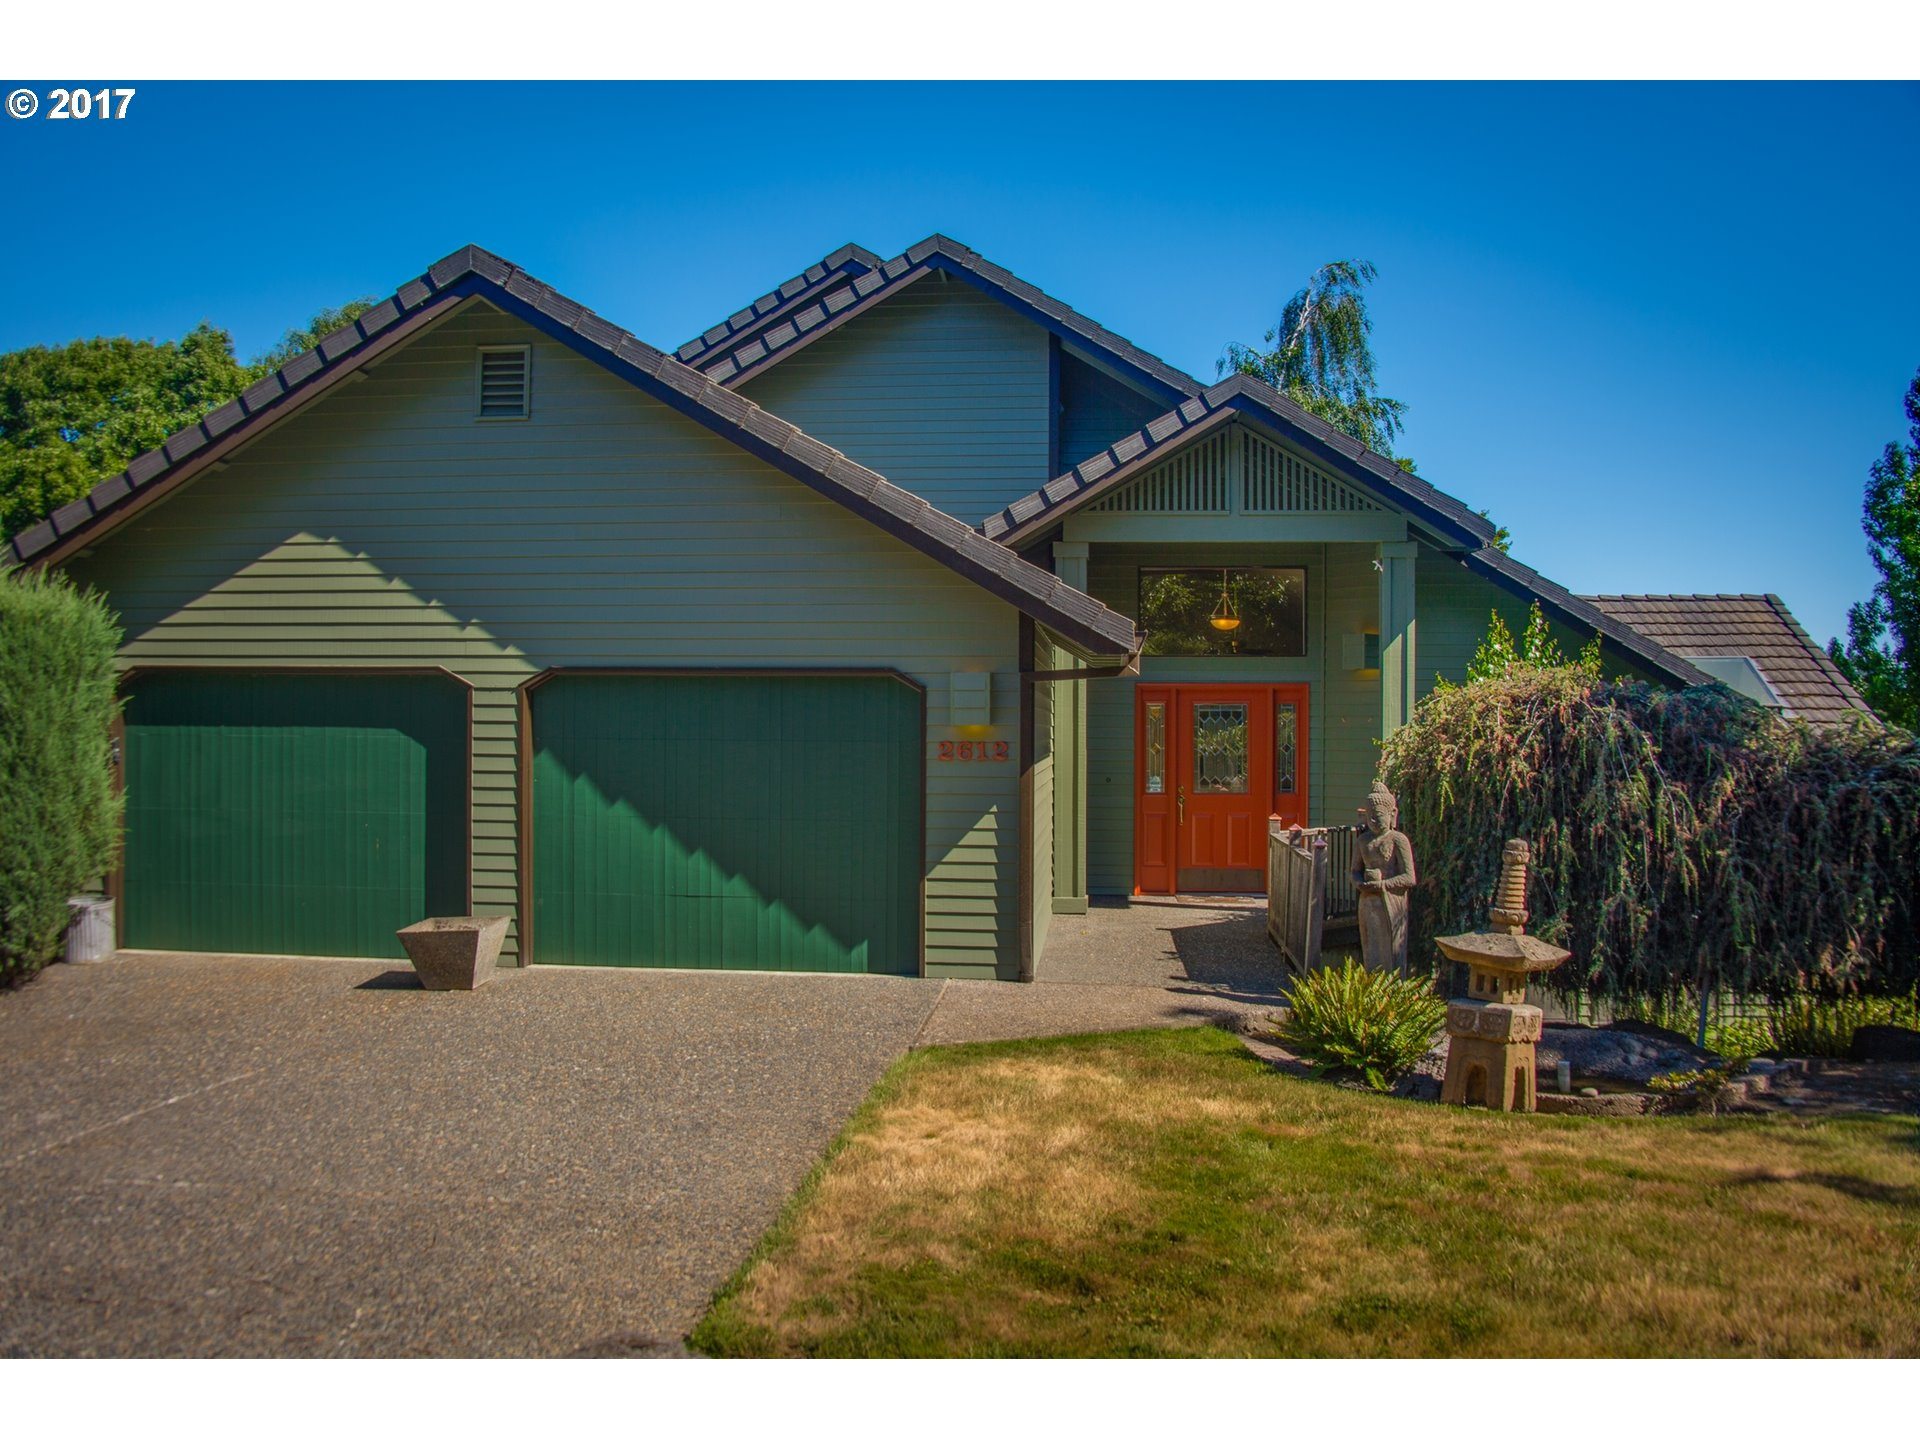 2612 SW ORCHARD HILL LN, Lake Oswego, OR 97035